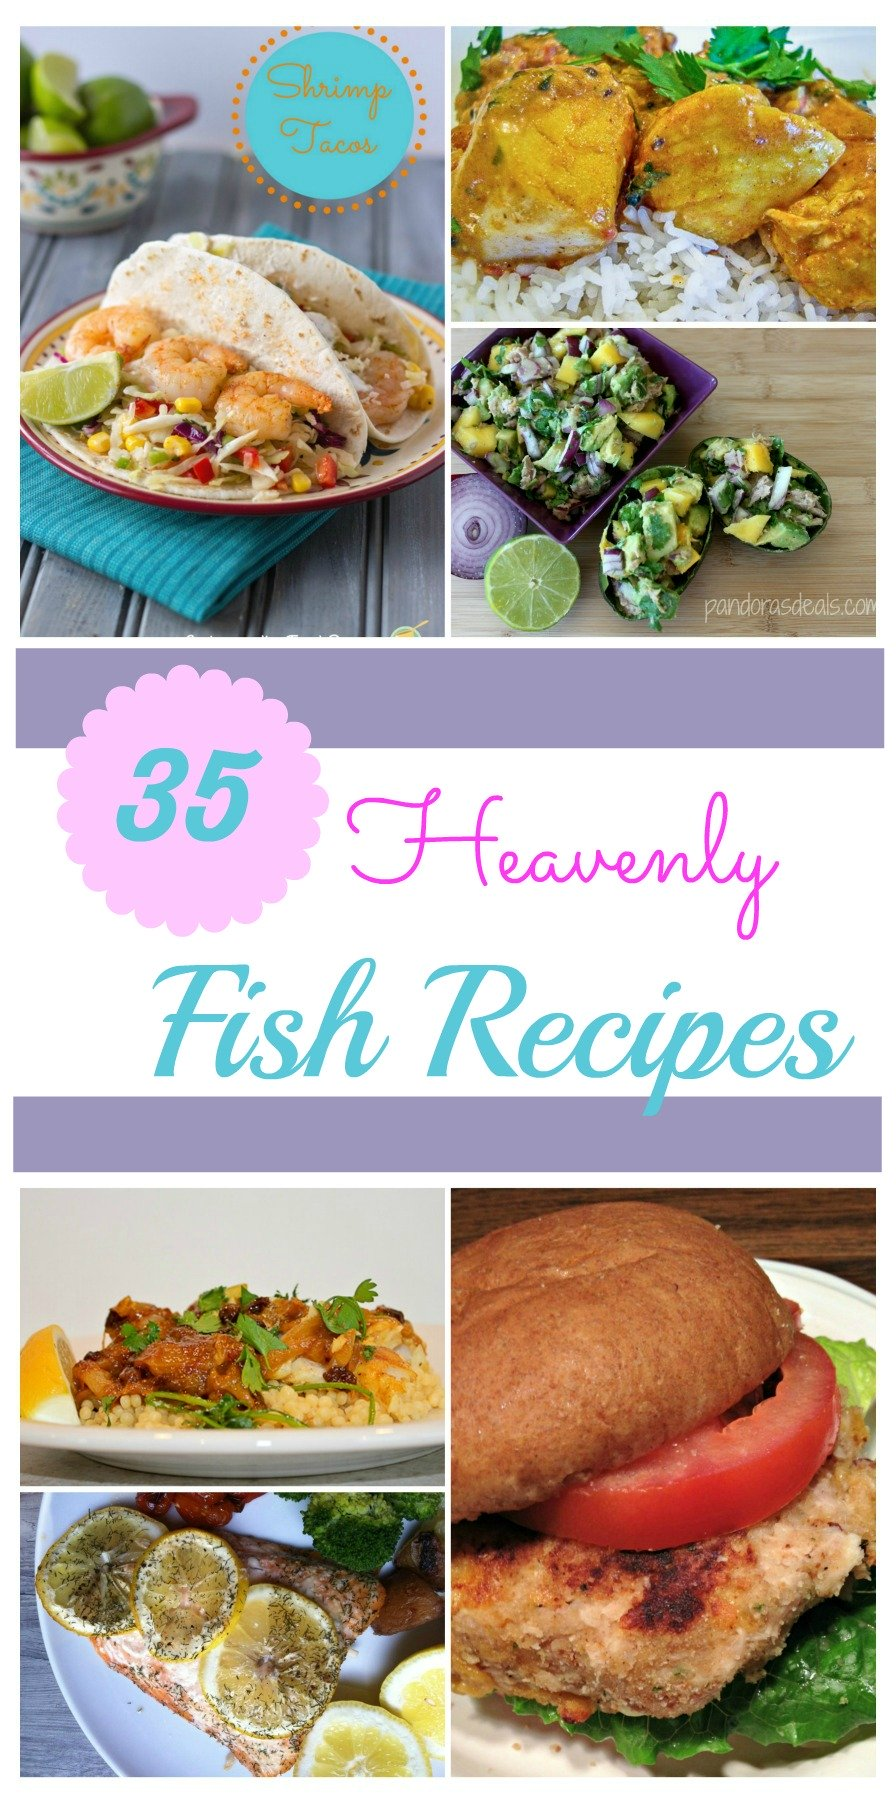 Looking for some delicious fish recipes? Check out round up of 35 heavenly fish recipes here!